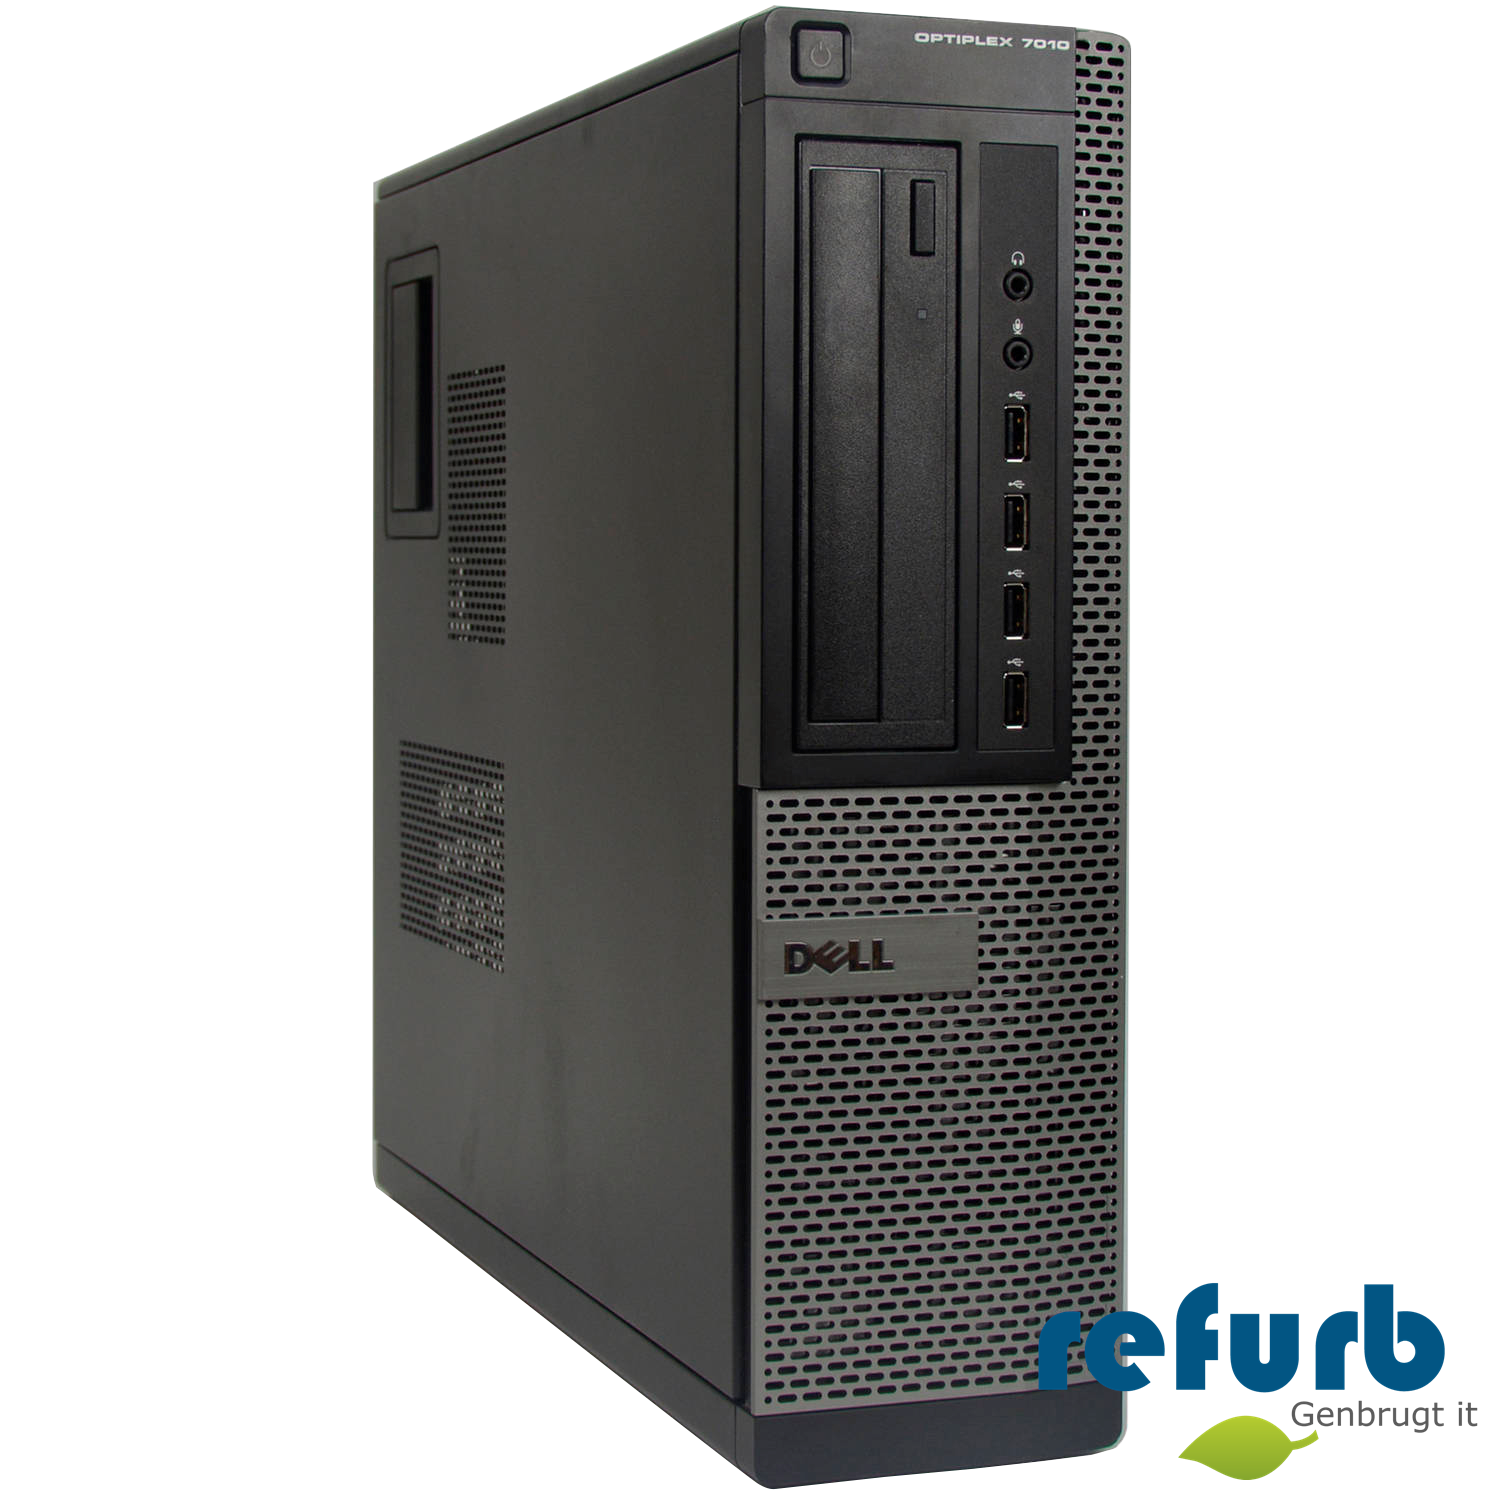 Dell Dell optiplex 790 dt fra refurb